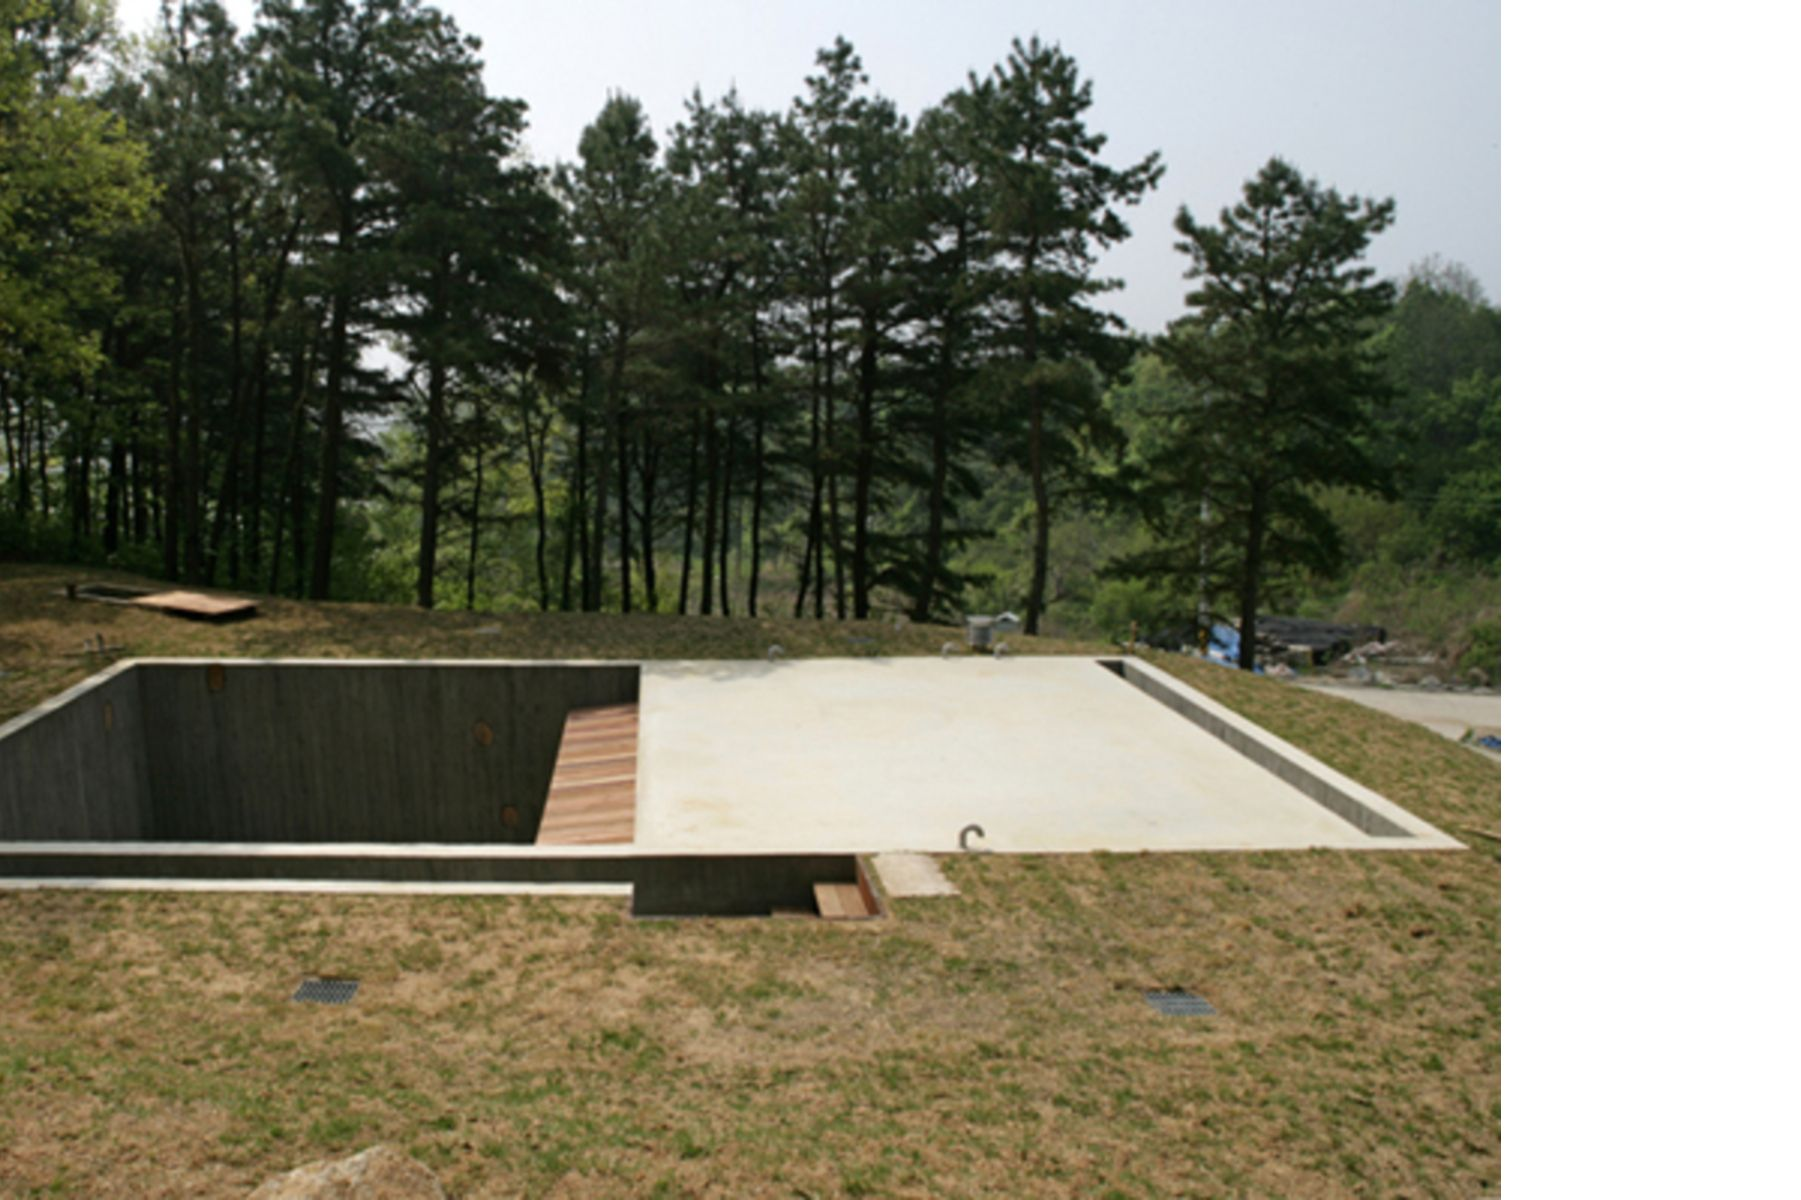 Admirable Byoungsoo Cho Earth House In Sudkorea Floornature Interior Design Ideas Gentotryabchikinfo